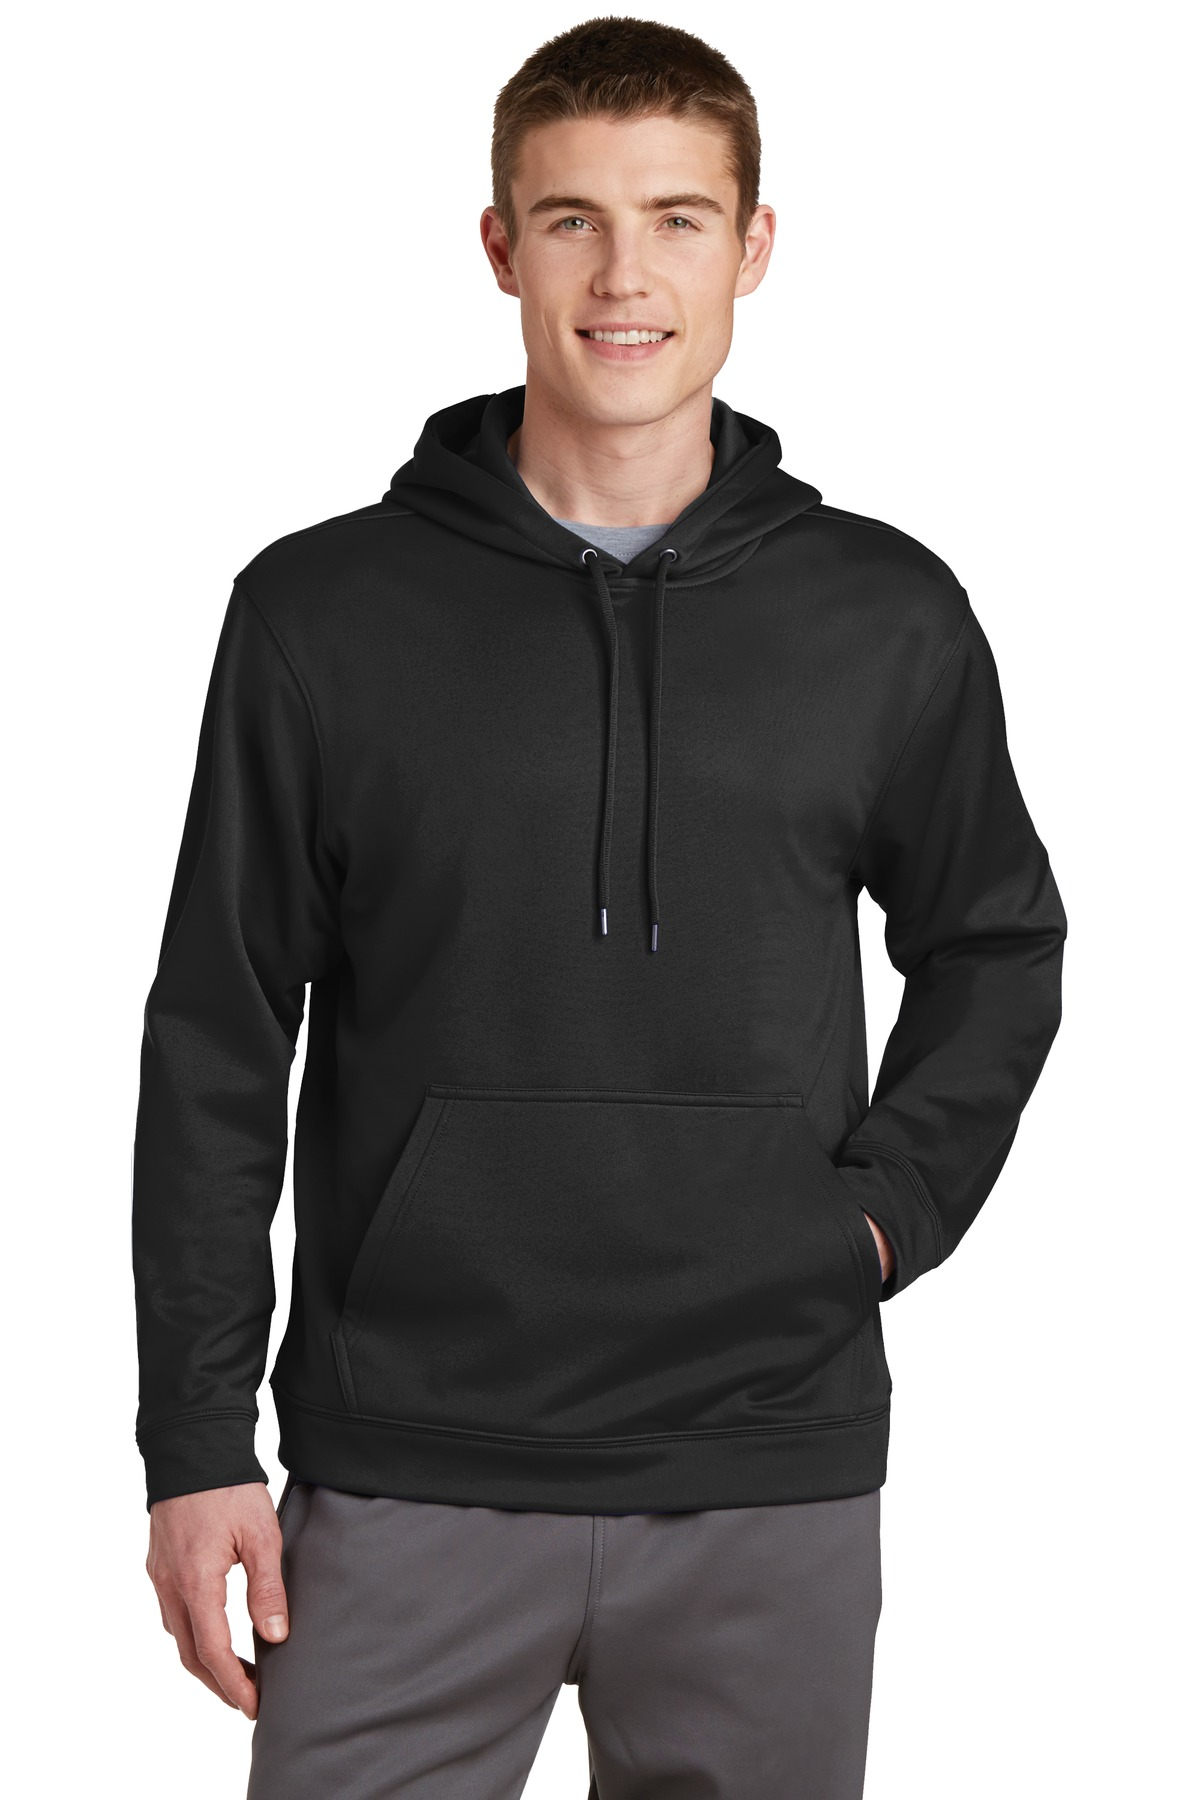 Sport-Tek ®  Sport-Wick ®  Fleece Hooded Pullover.  F244 - Black